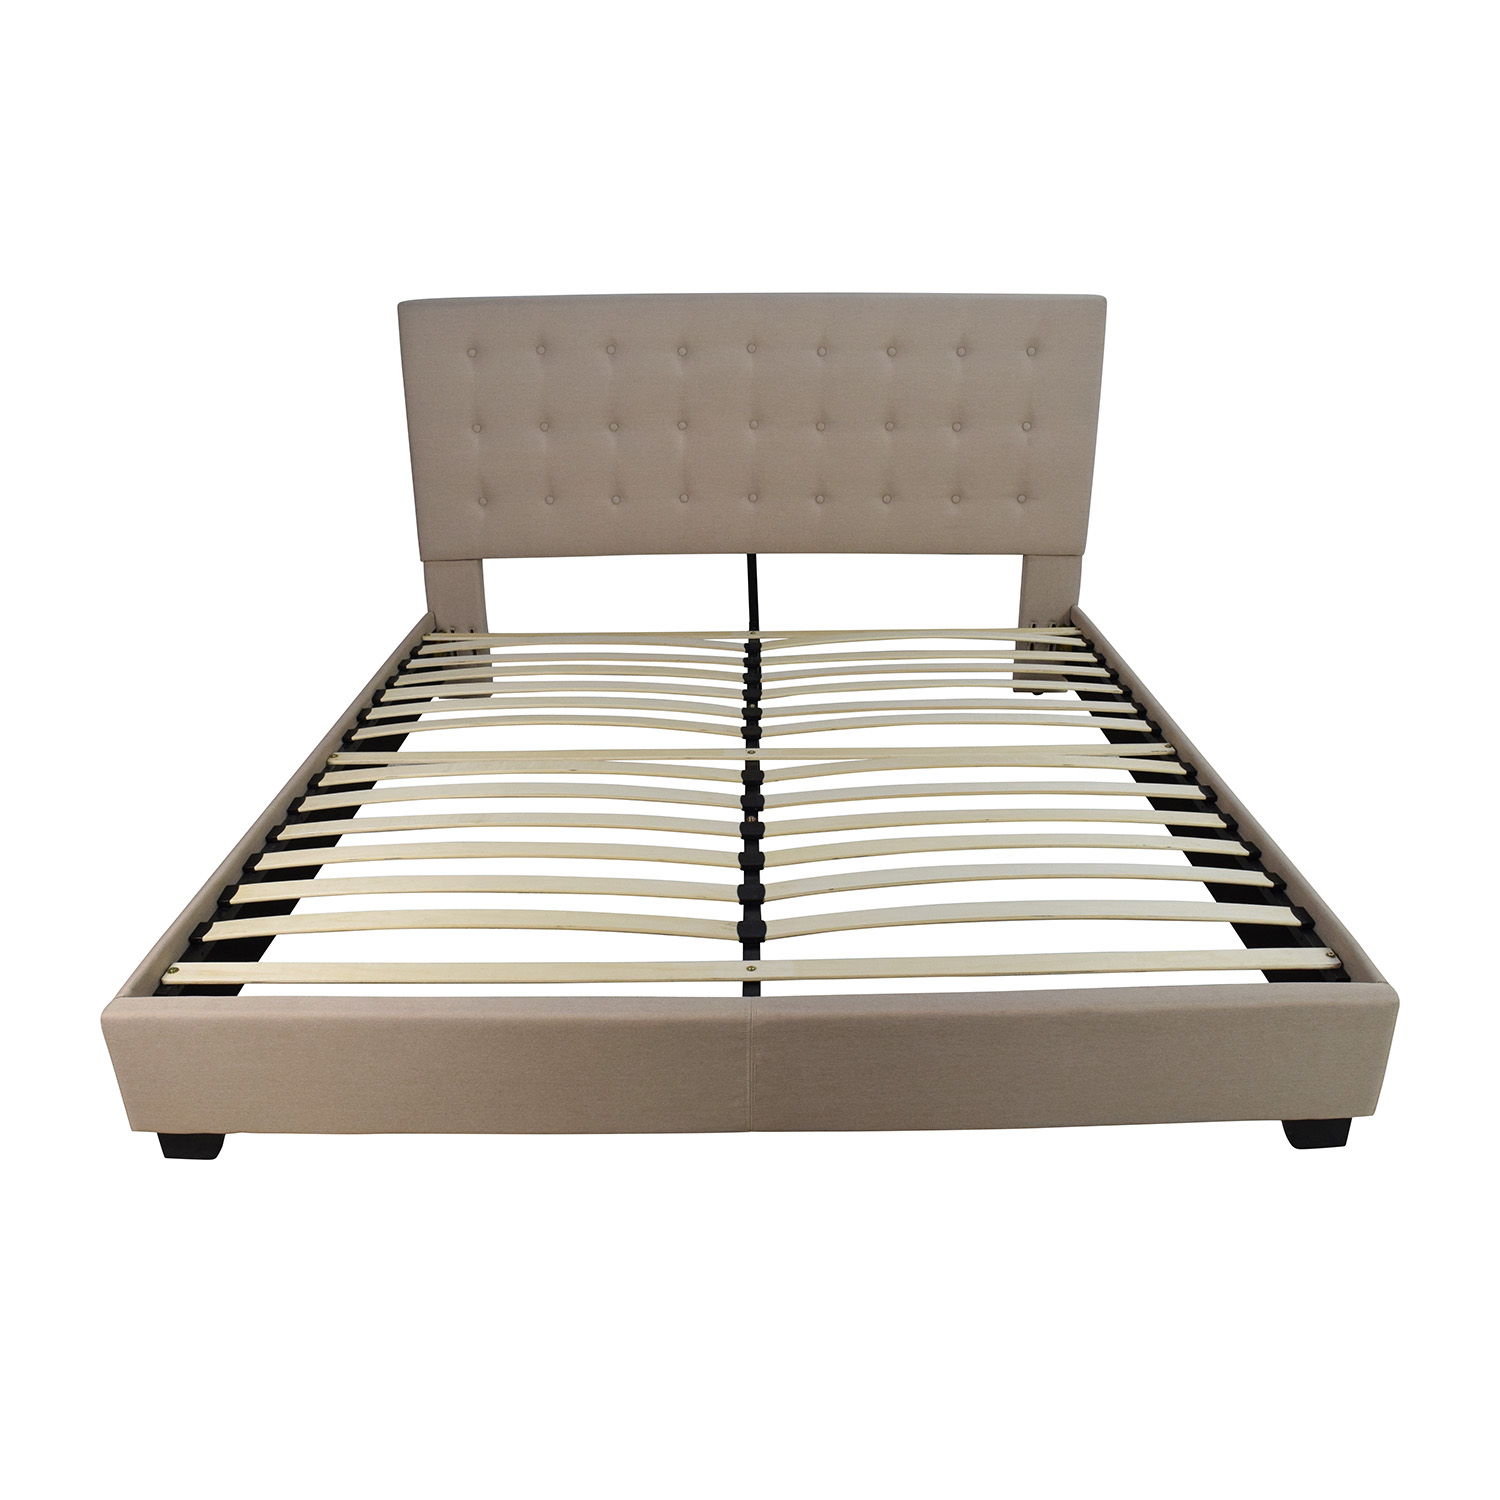 king size taupe cloth bed frame for sale - Used Bed Frames